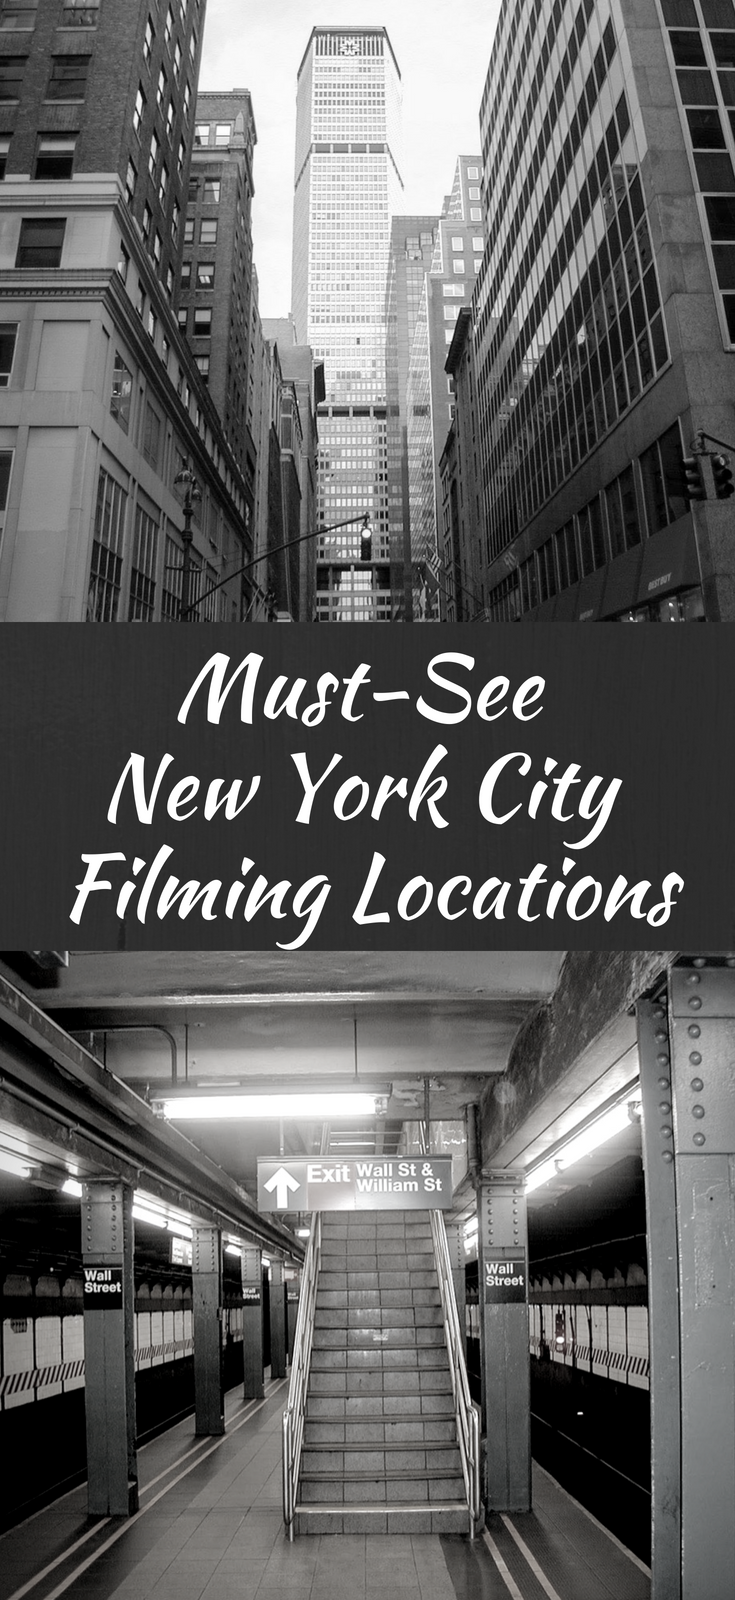 10 Nyc Shooting Locations To Visit Top Tv Shows Filmed In New York City New York City Guide New York Tours New York City Travel